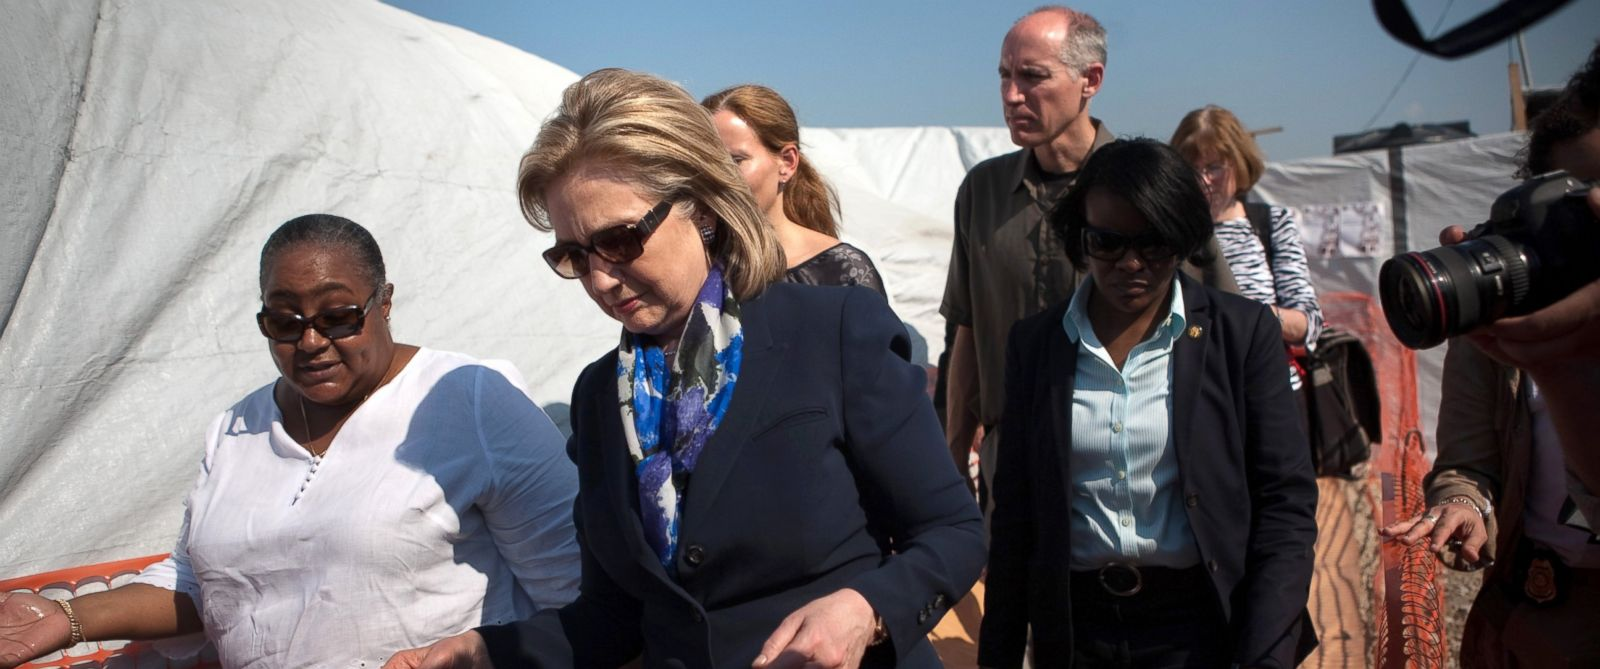 PHOTO: U.S. Secretary of State Hillary Clinton visits a cholera clinic run jointly by Partners in Health and the Haitian Red Cross within an IDP camp called La Piste, Jan. 30, 2011, in Port-au-Prince, Haiti.